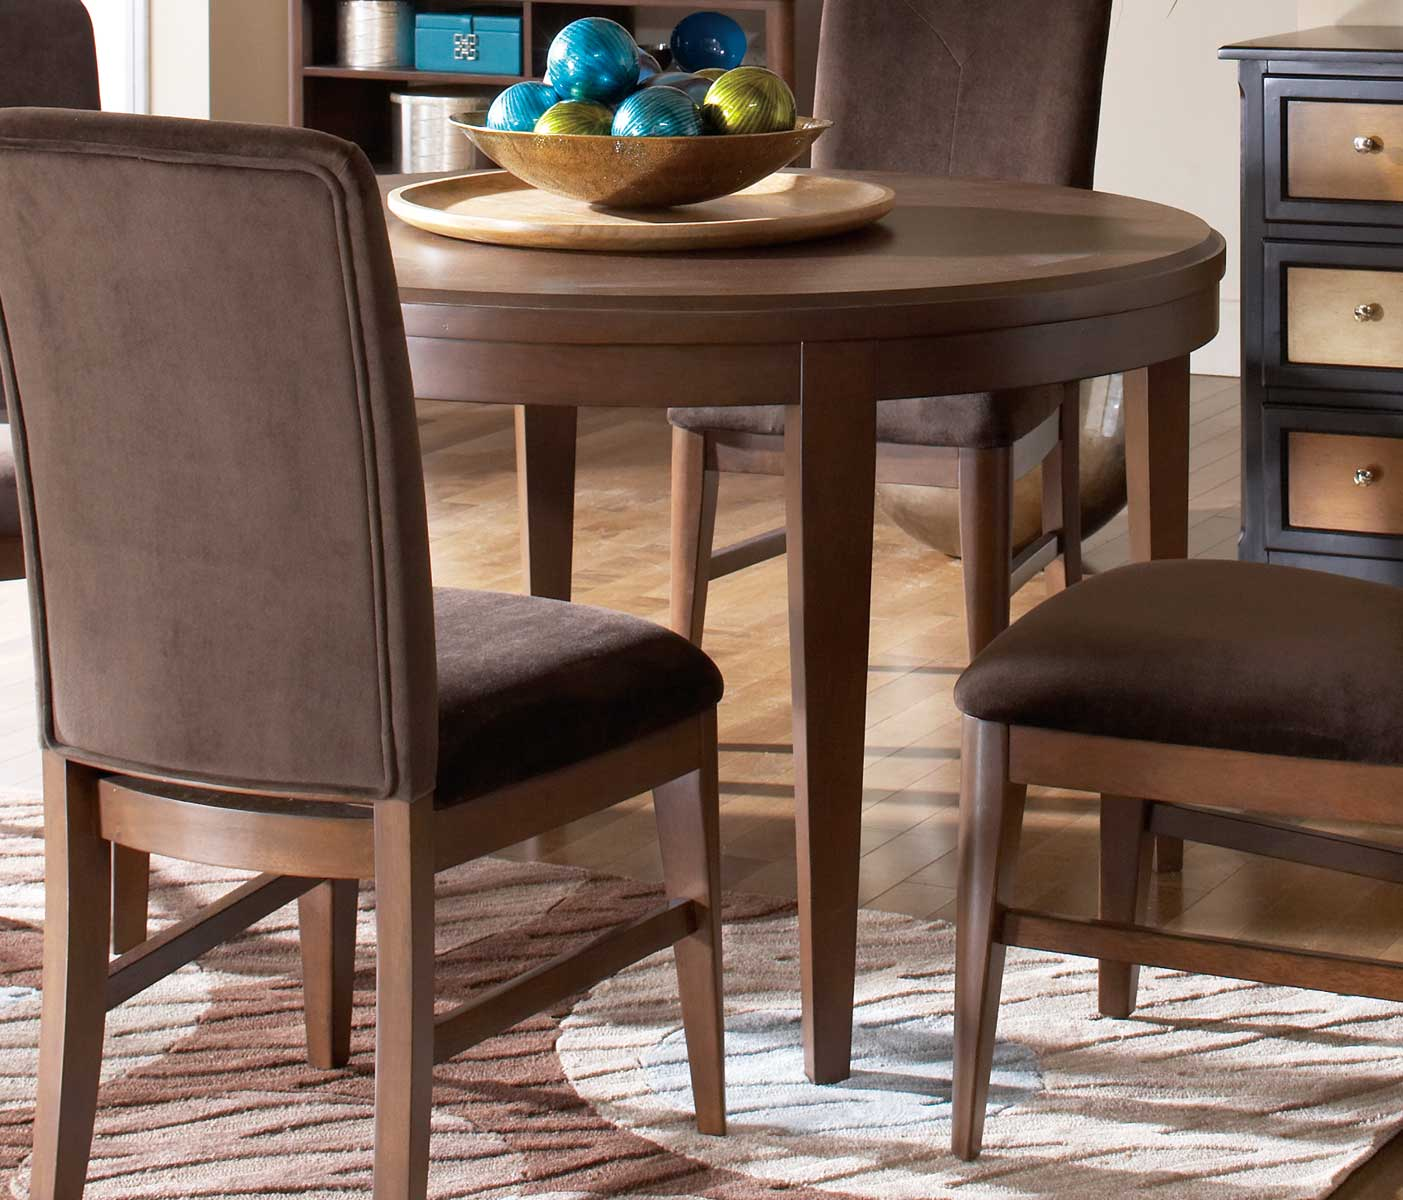 Homelegance Beaumont Round Dining Table - Brown Cherry